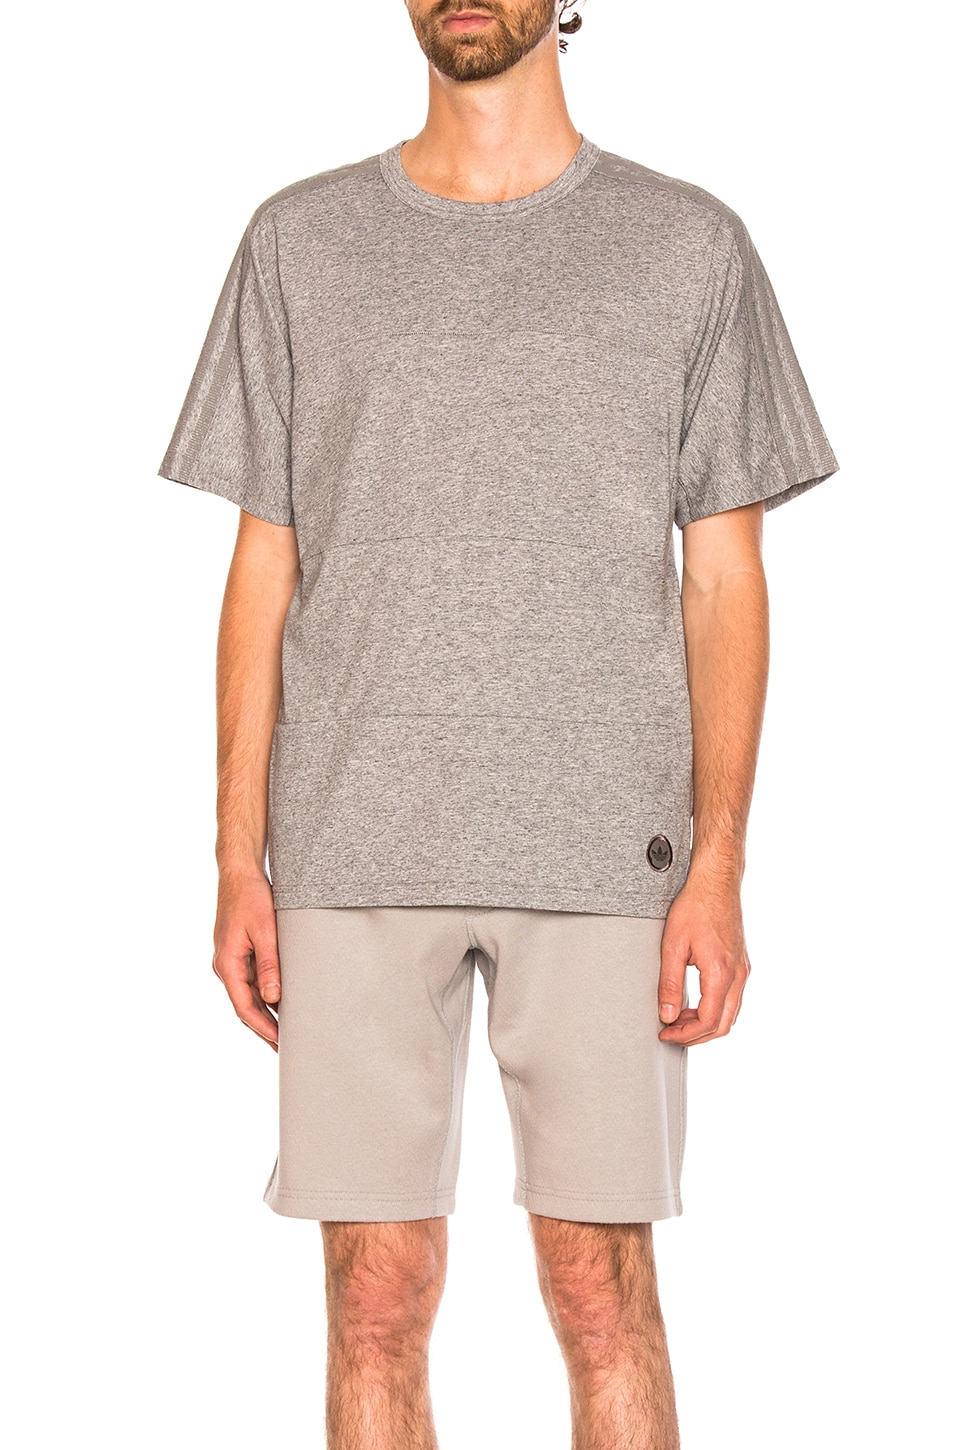 WH Tee by adidas by wings + horns